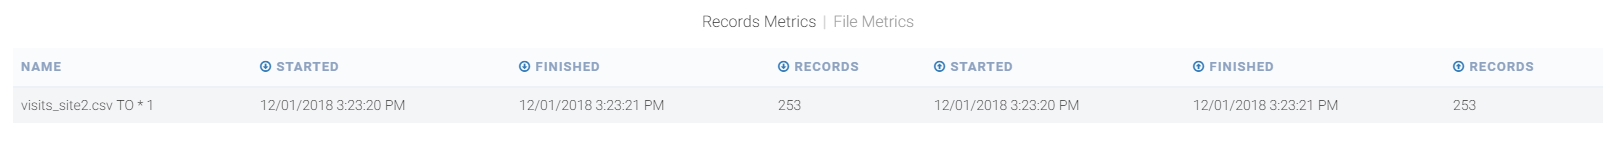 records-metrics.png